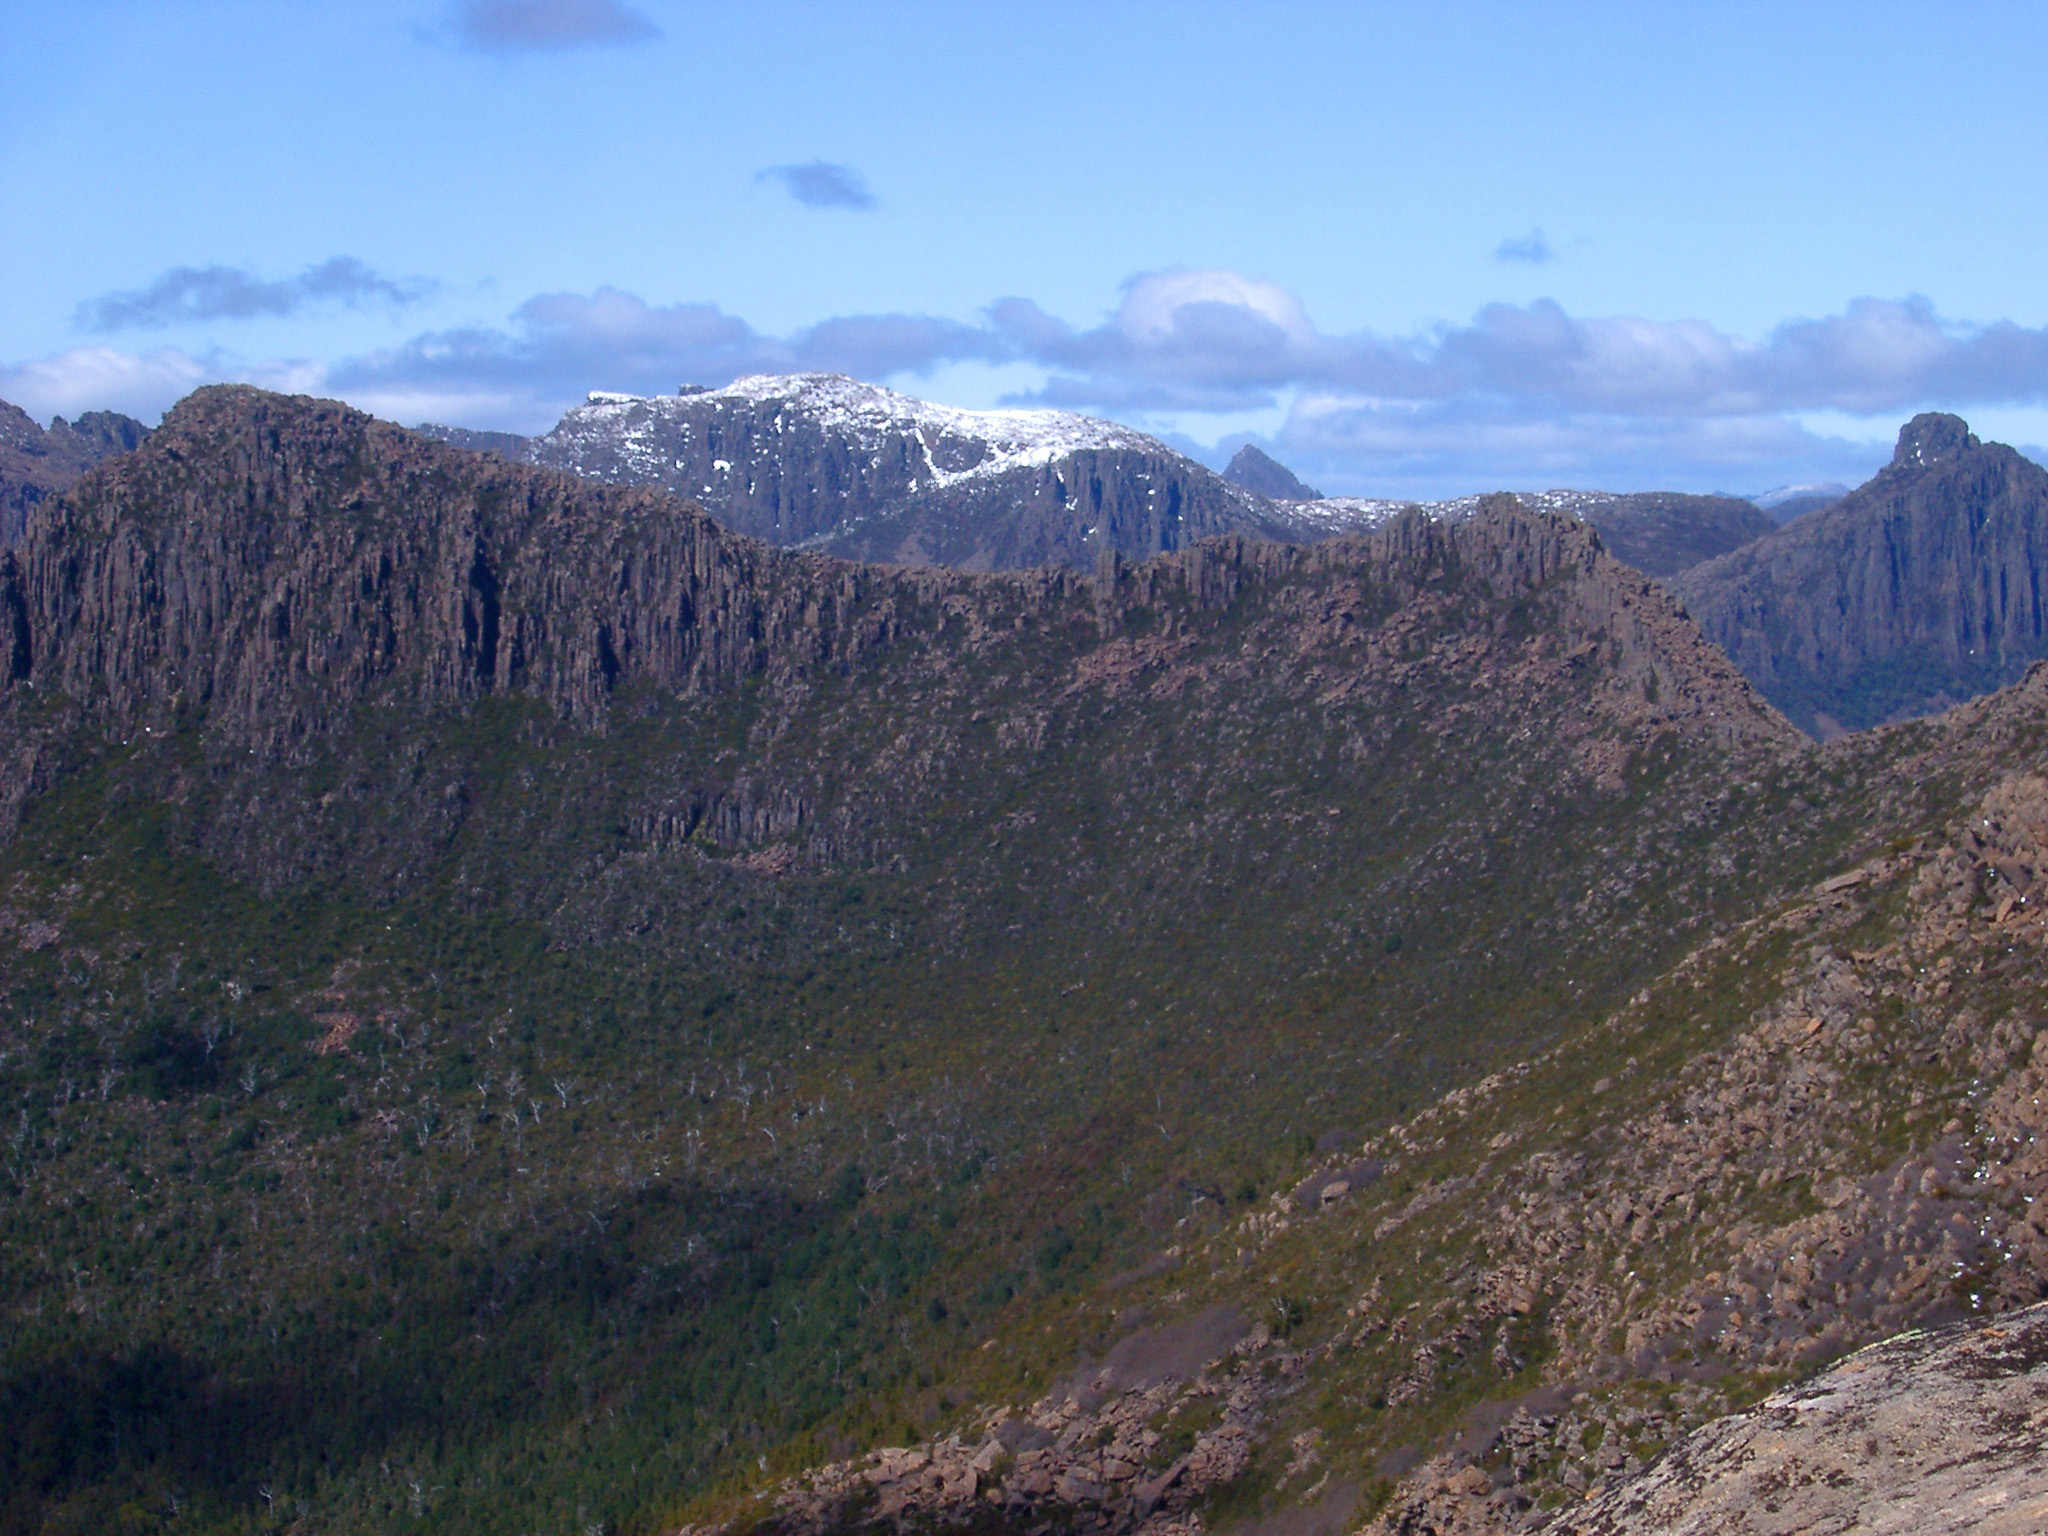 View from Mount Ossa, Tasmania, the highest peak in the heart of Cradle Mountain-Lake St Clair National Park with distant rugged mountain valleys and peaks with scattered snow